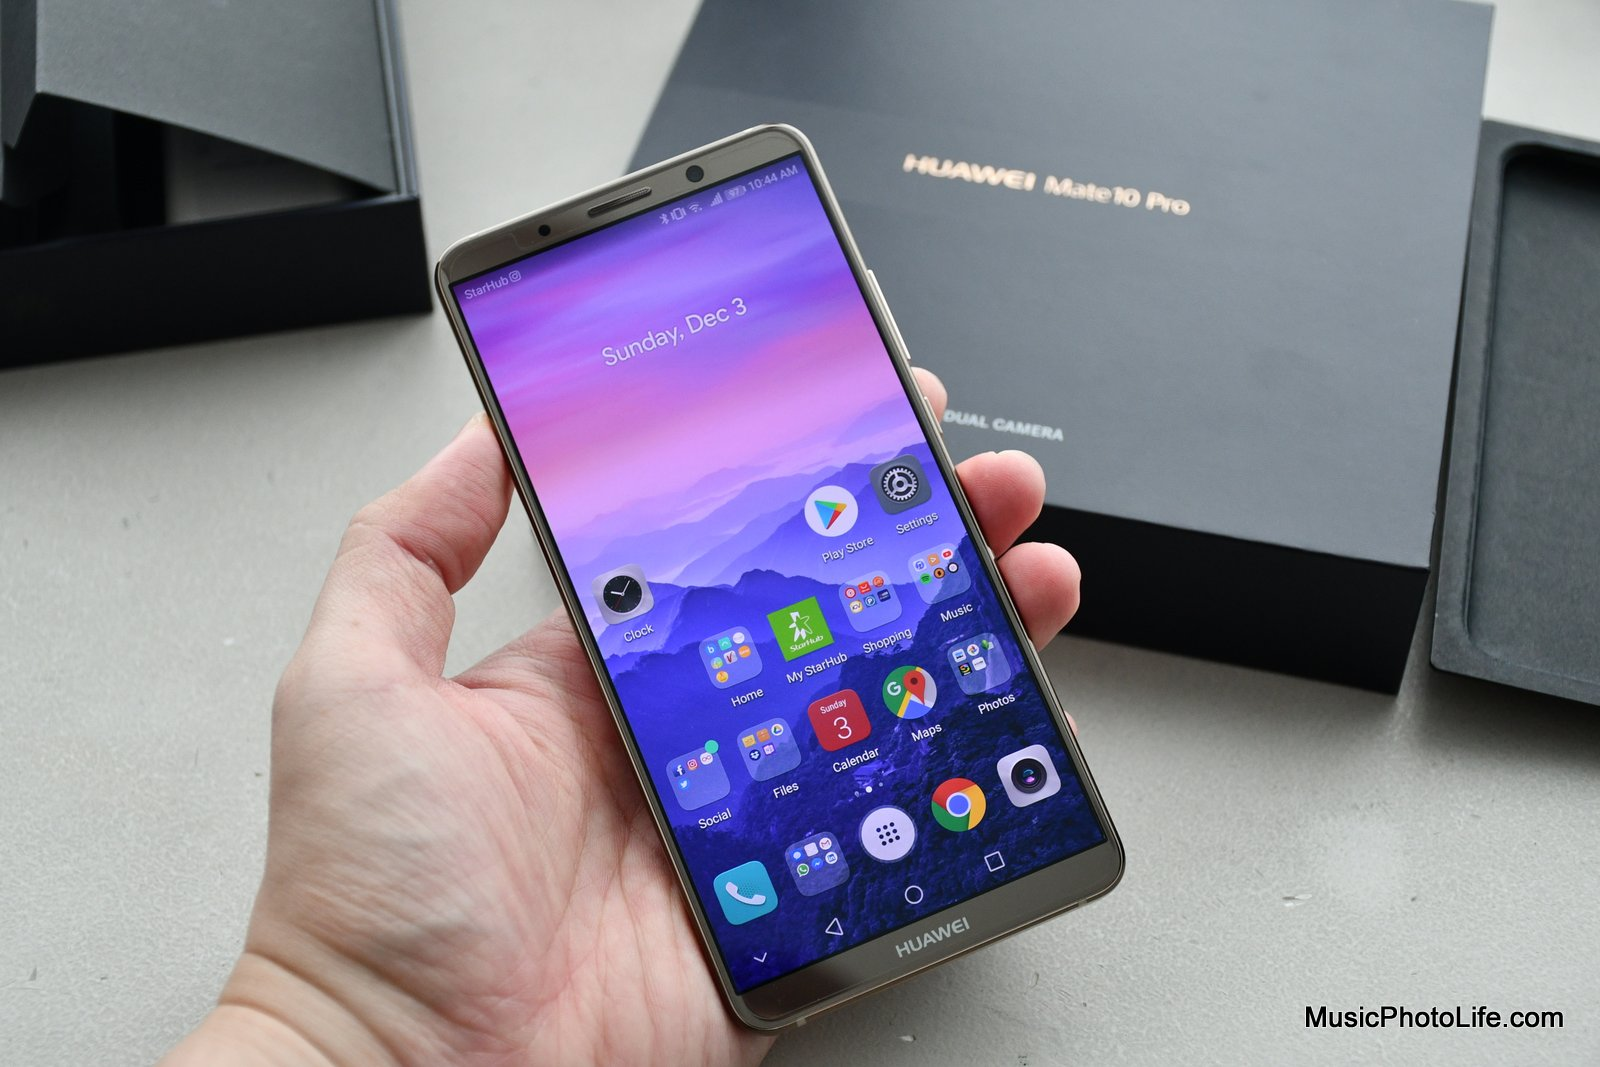 Huawei Mate 10 Pro: Hands-on Review